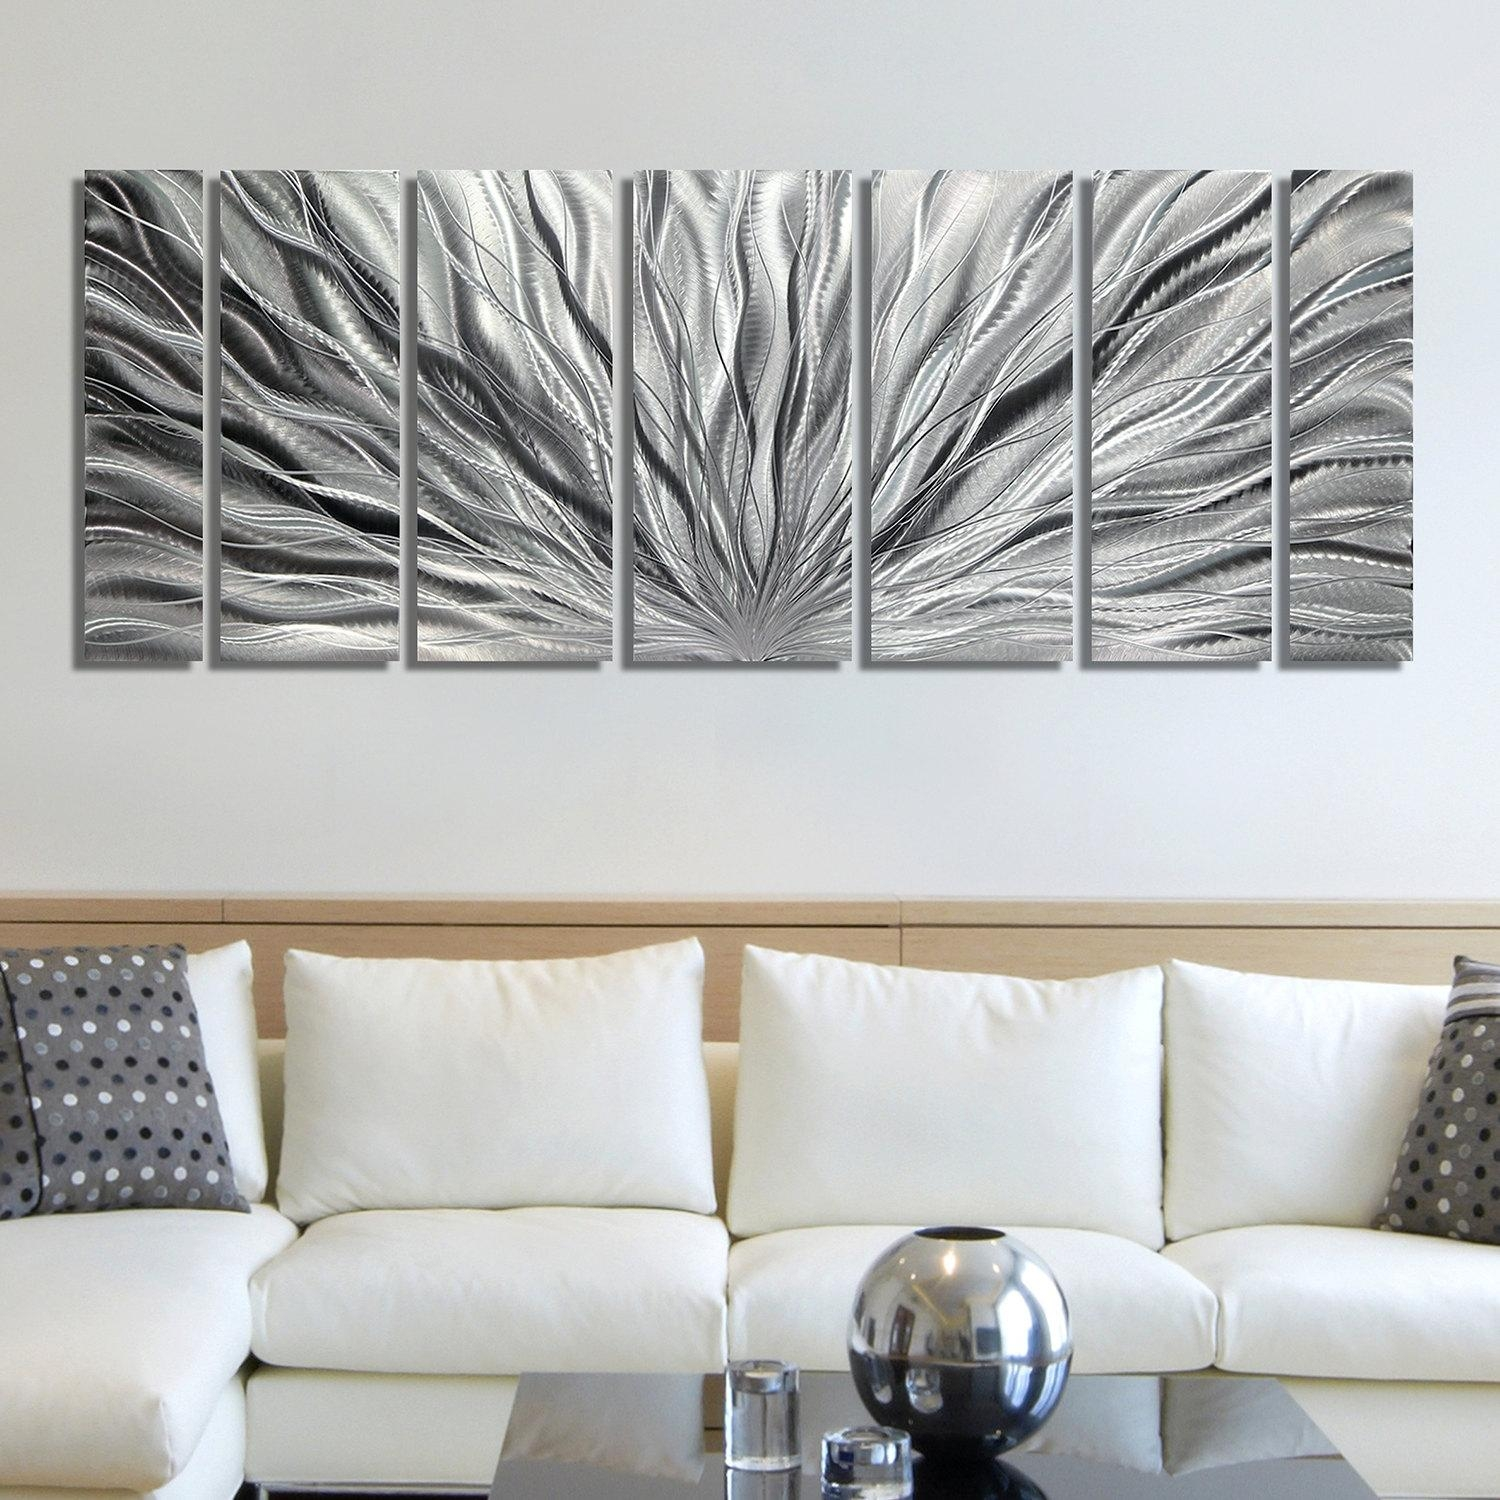 Sale Large Multi Panel Metal Wall Art In All Silver For Large Abstract Metal Wall Art (Image 18 of 20)